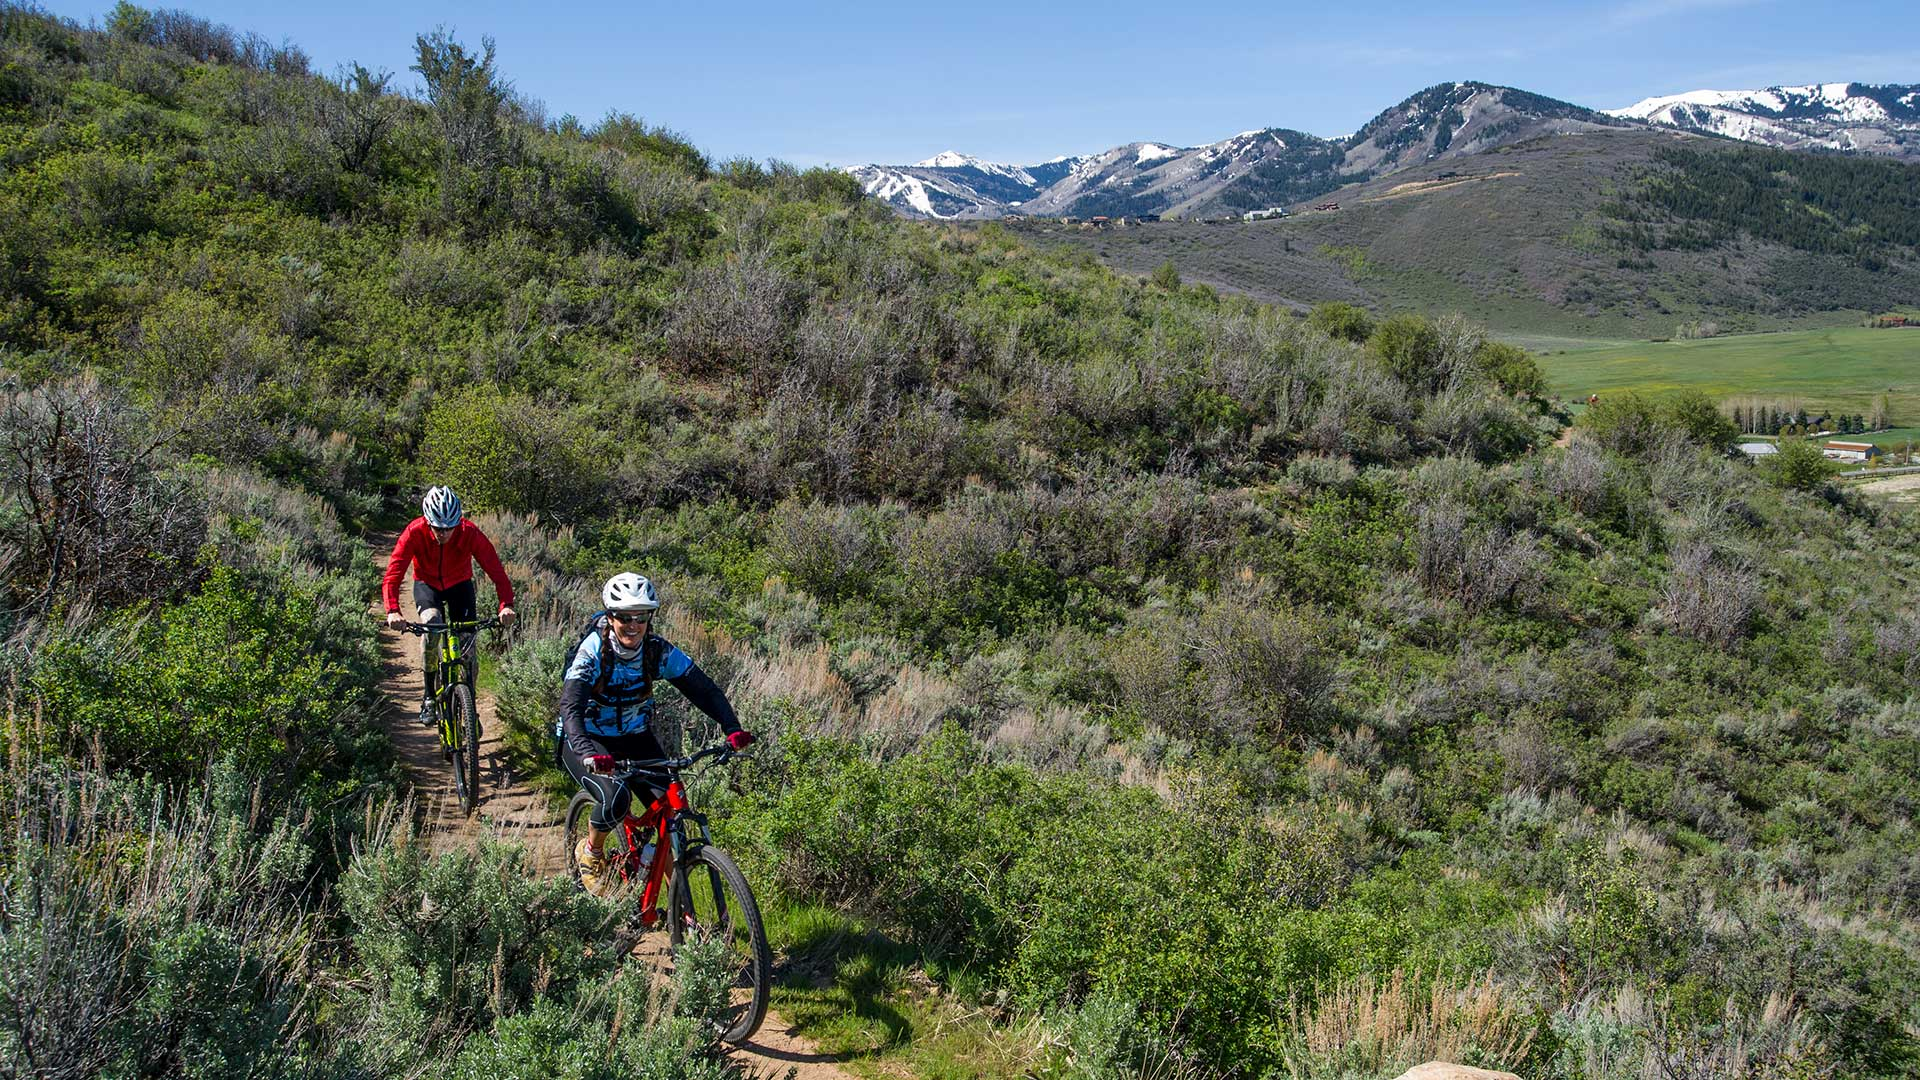 Mountain Biking 201 Loesson from White Pine Touring in Park City, UT.